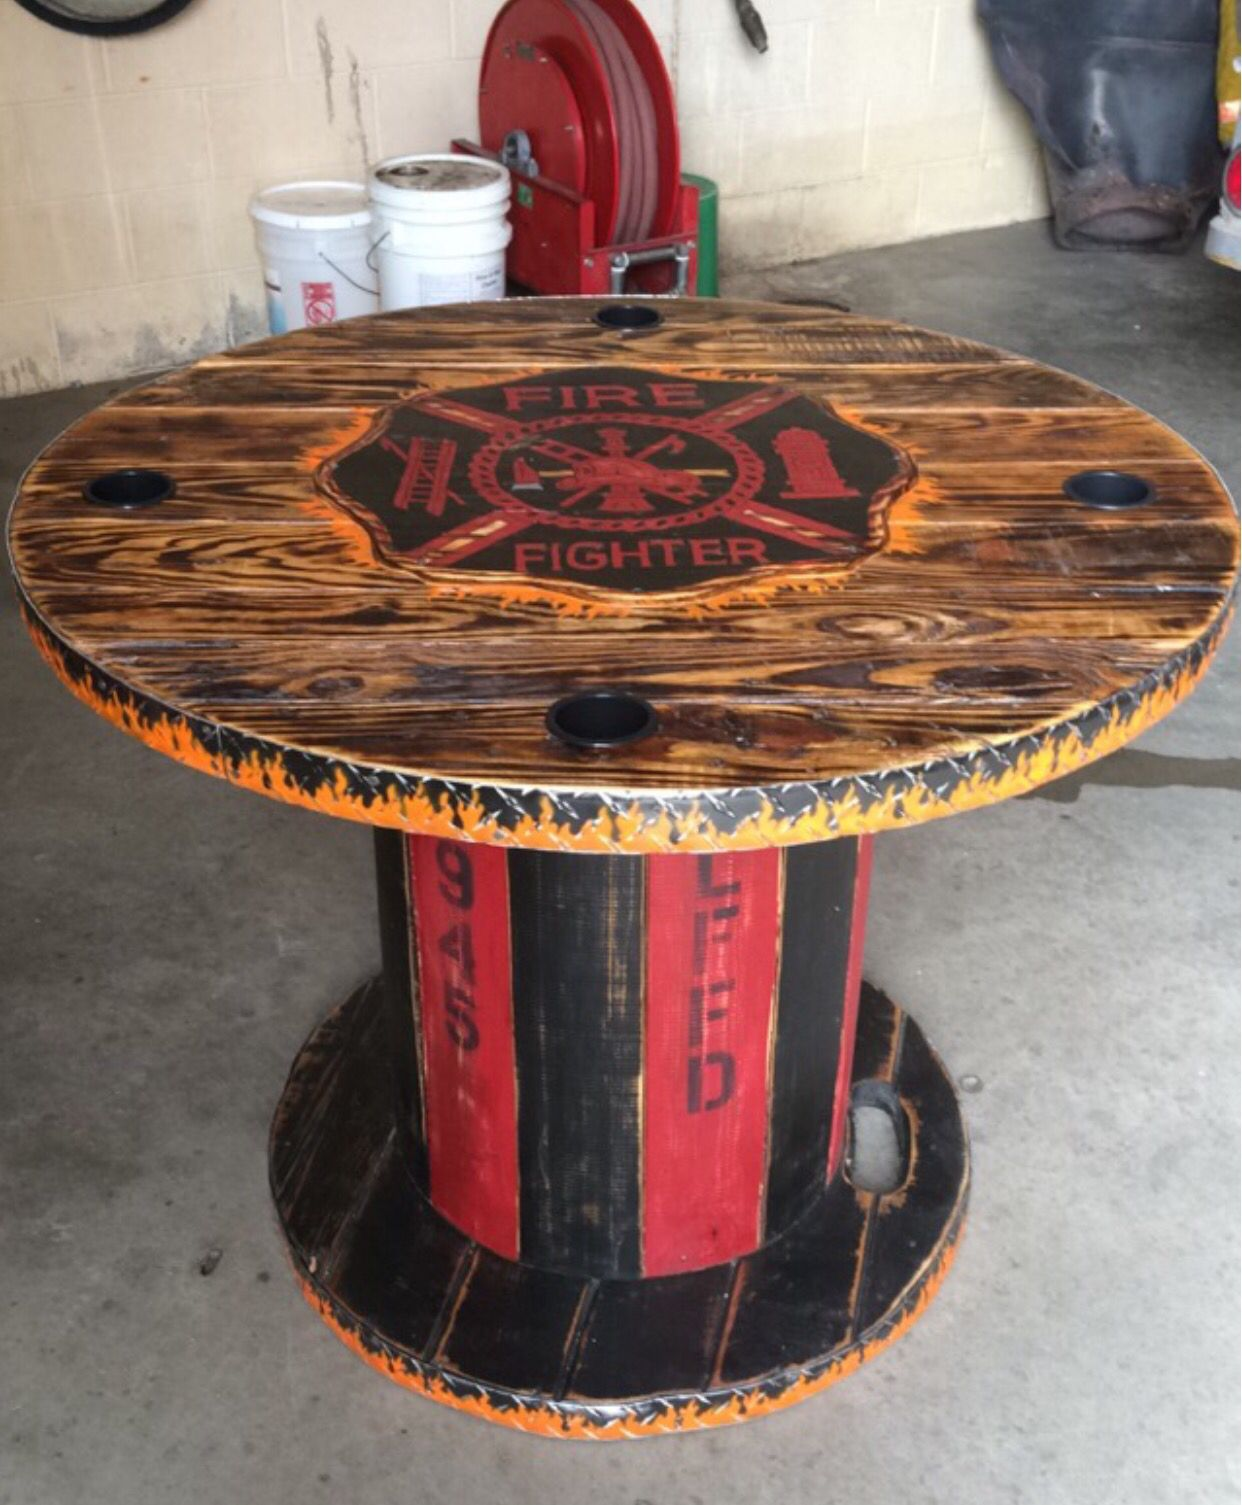 Wooden spool firefighter table my creations cool spool for Concreteworks fire table